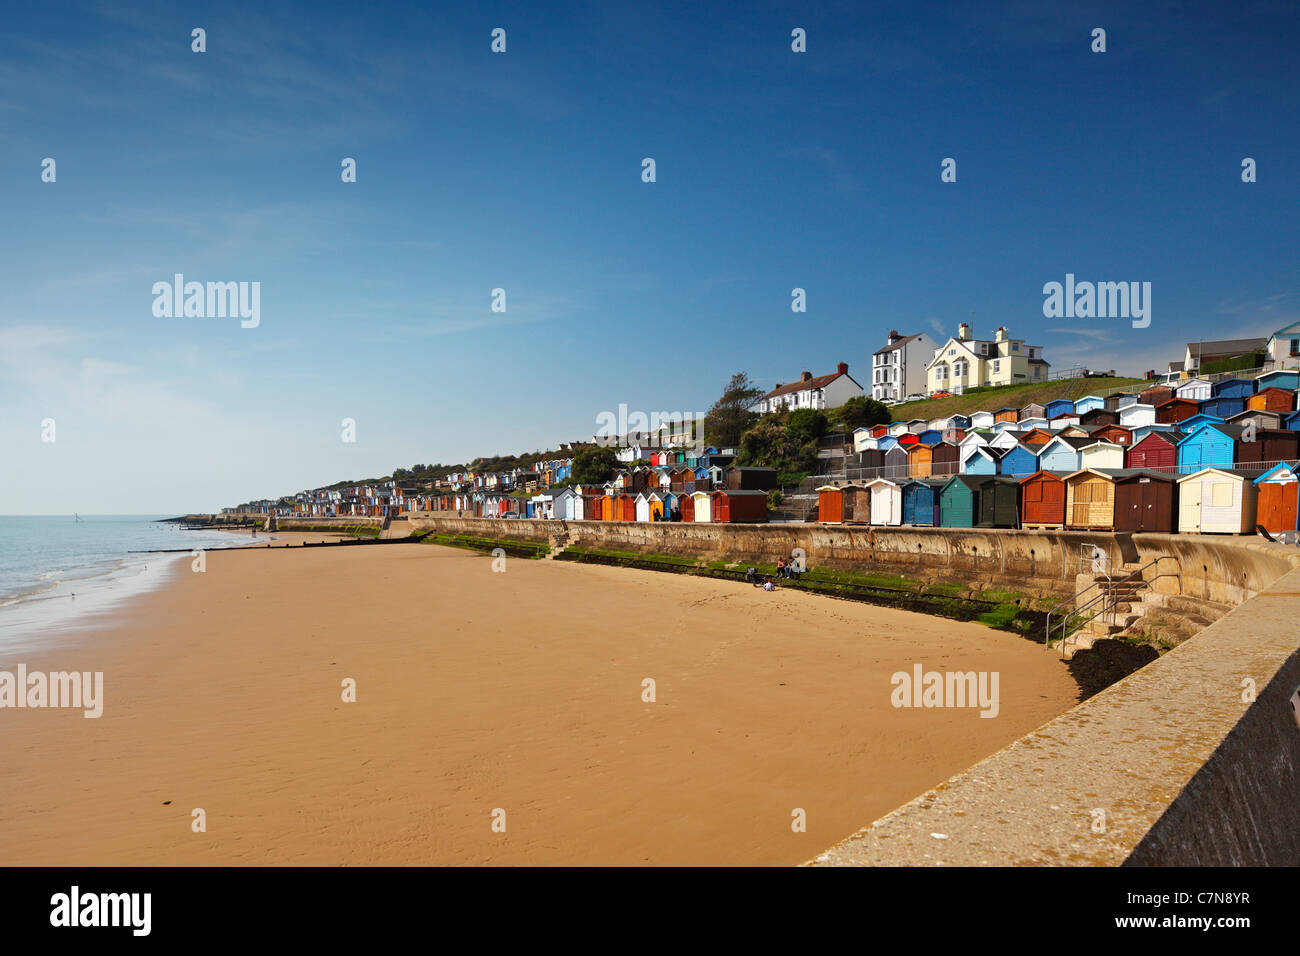 Walton On The Naze Stock Photo Royalty Free Image